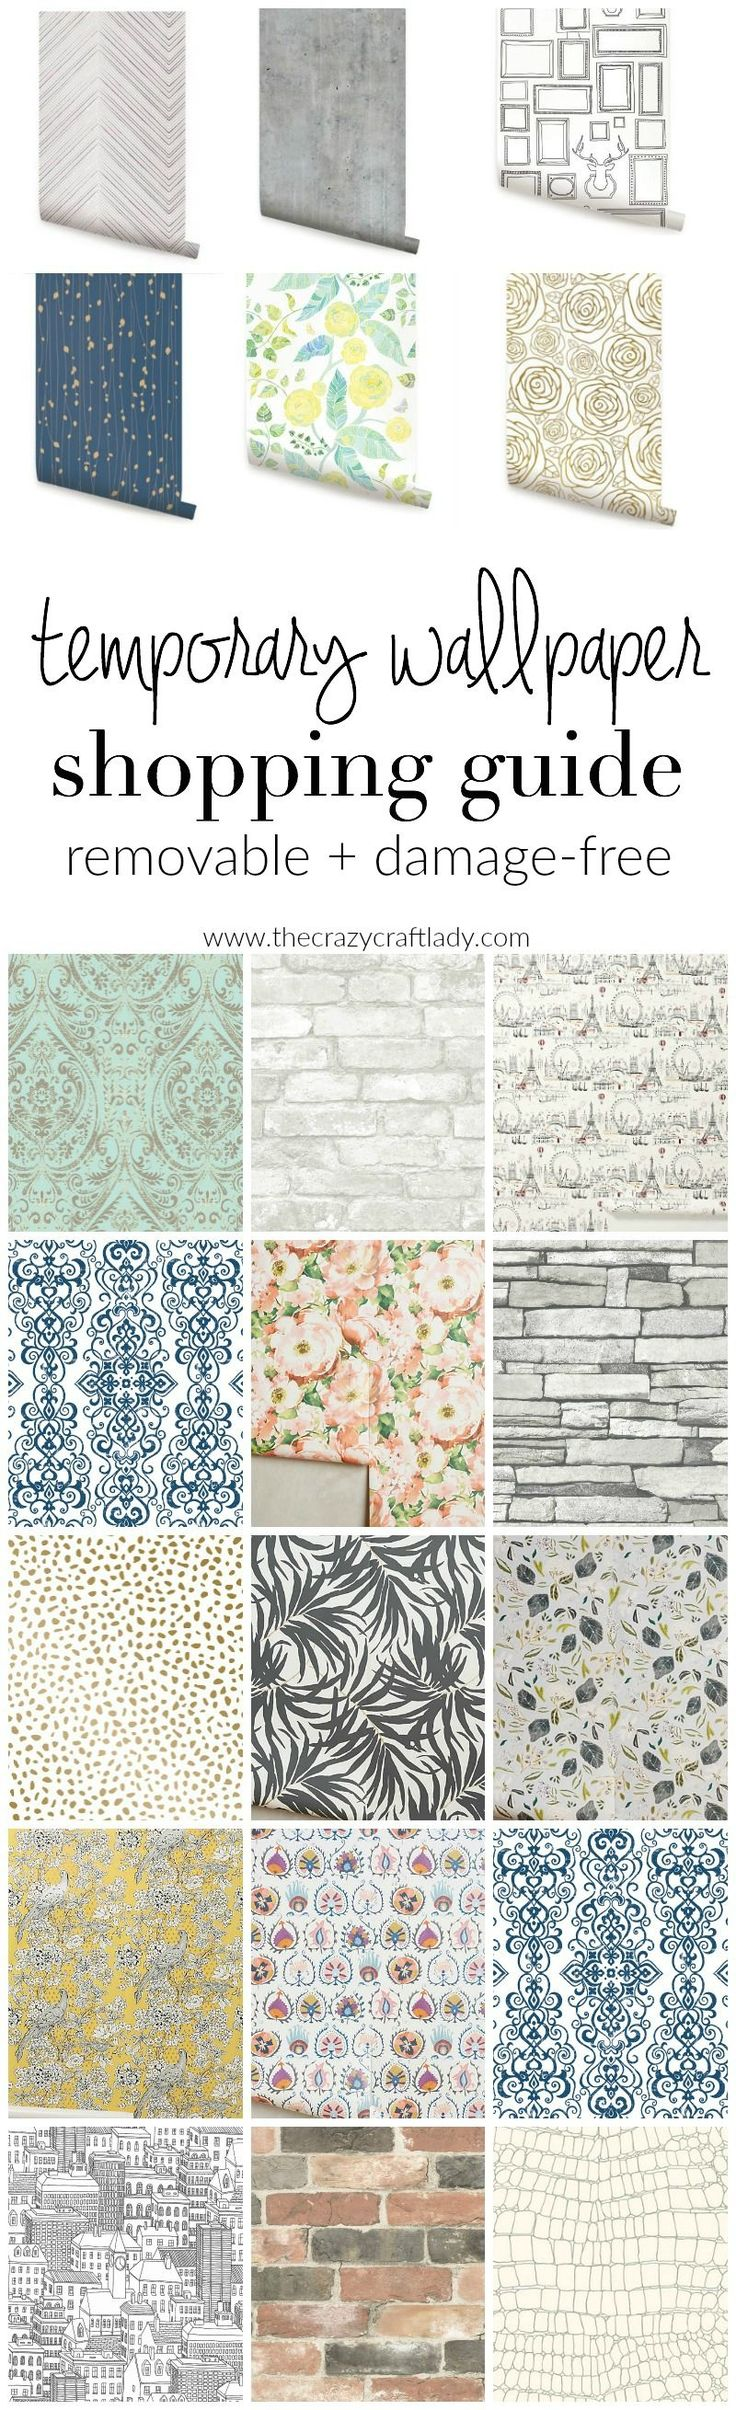 Temporary Wallpaper Shopping Guide - Peel and stick wallpaper comes in a variety of colors and patterns. Here are my favorite sources for AFFORDABLE removable wallpaper.